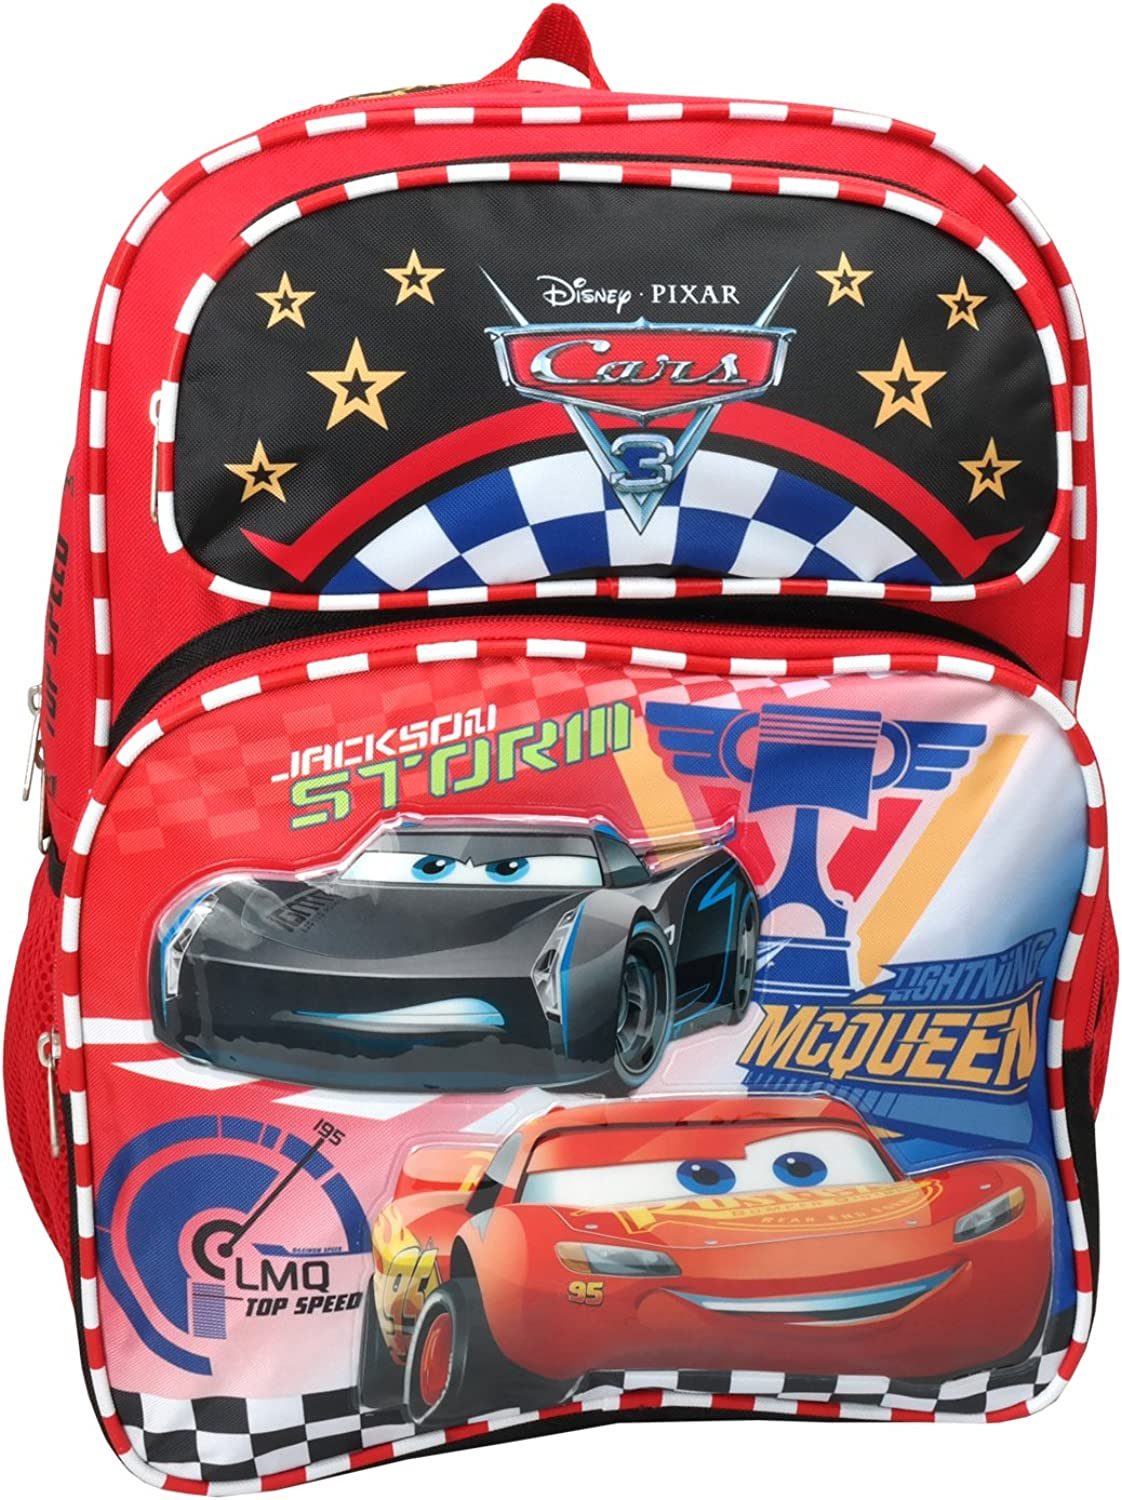 Disney Pixar Cars 3 Large 16 inches Backpack